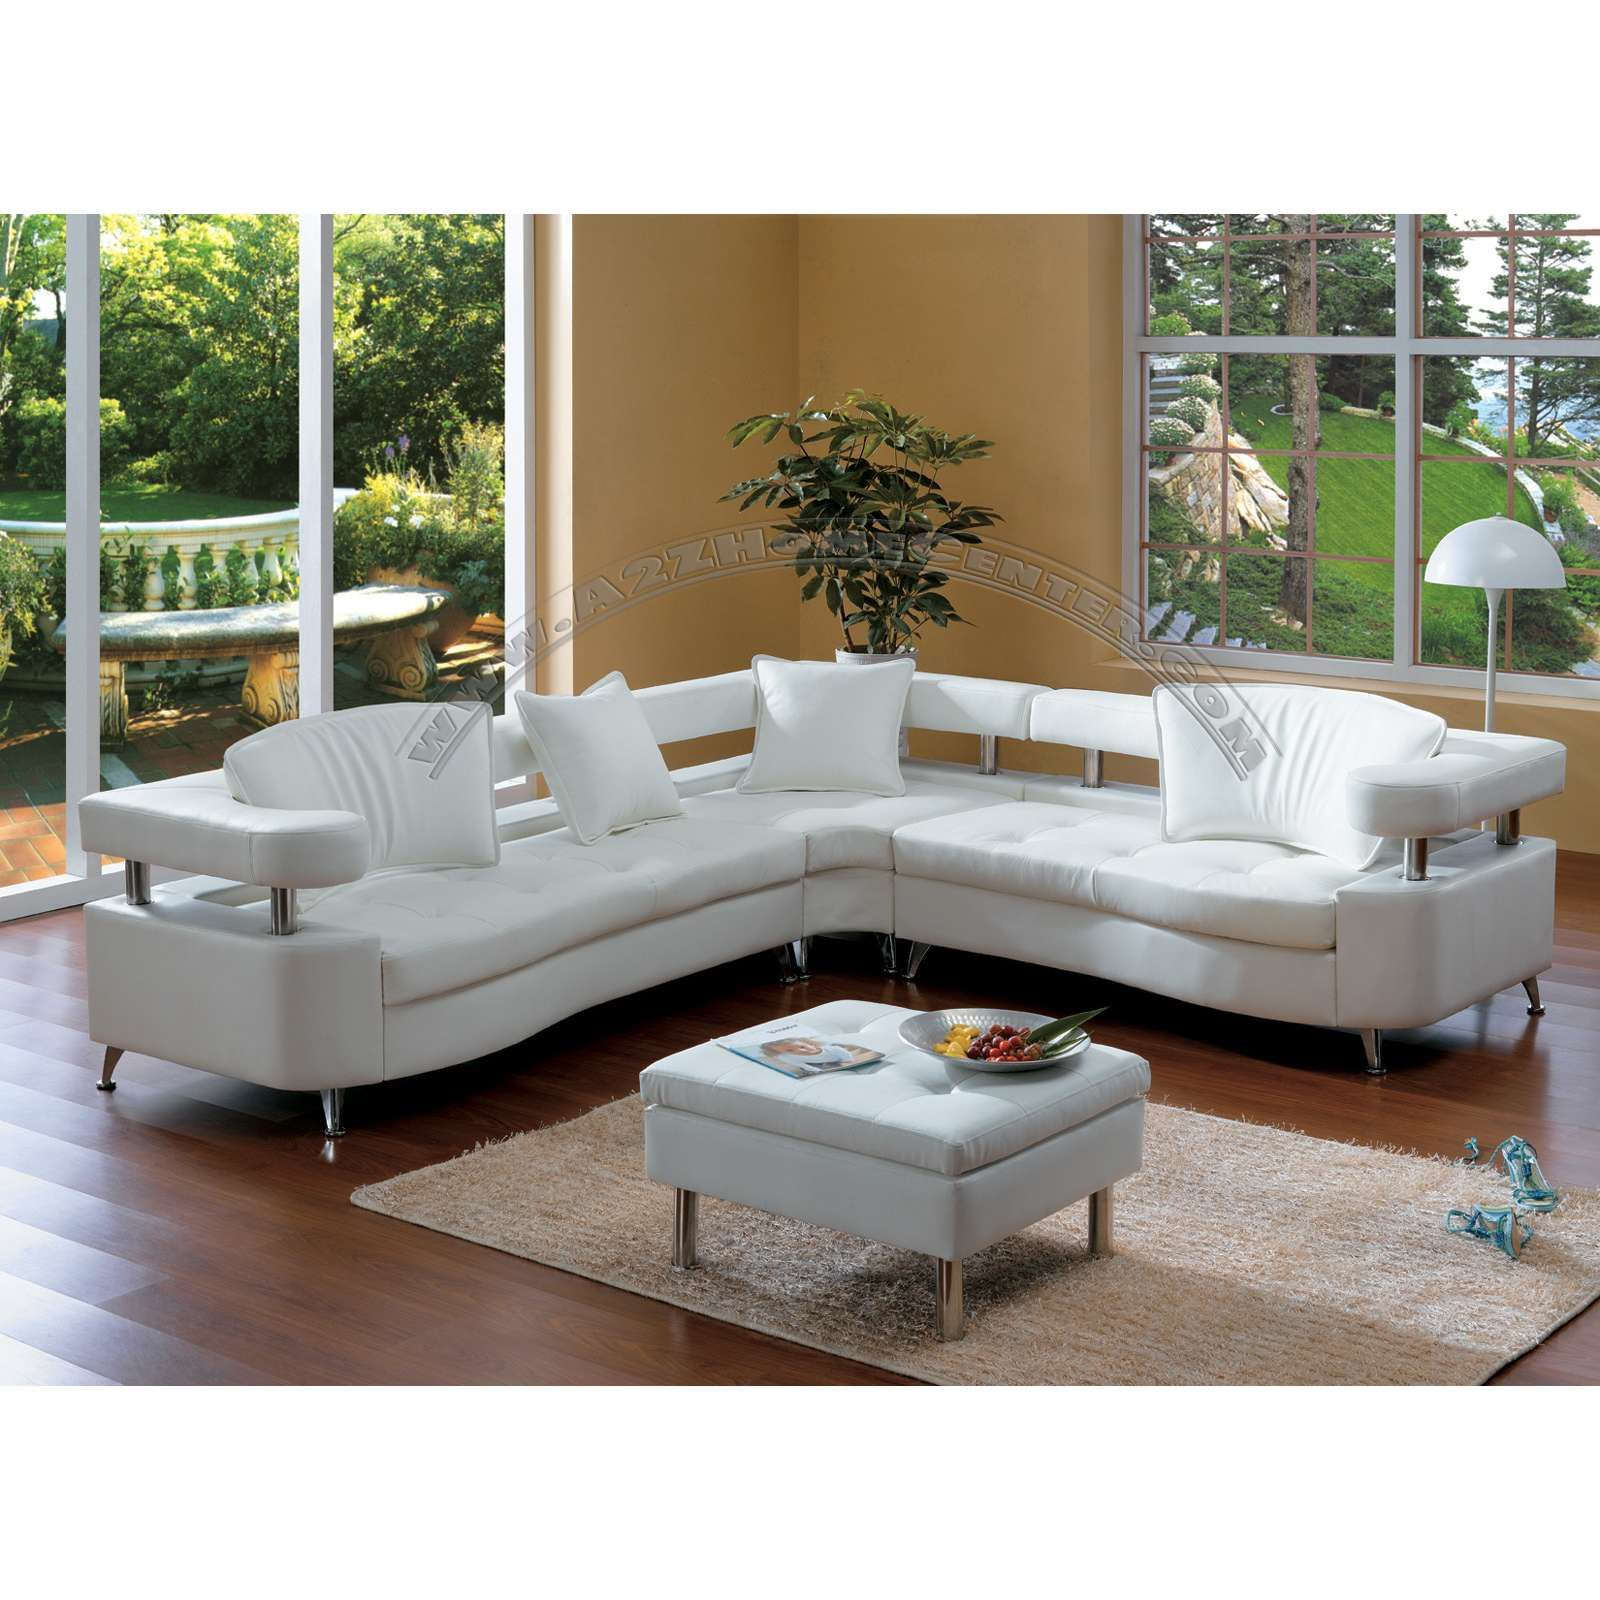 New Living Room Modern Designs Bedroom Futon